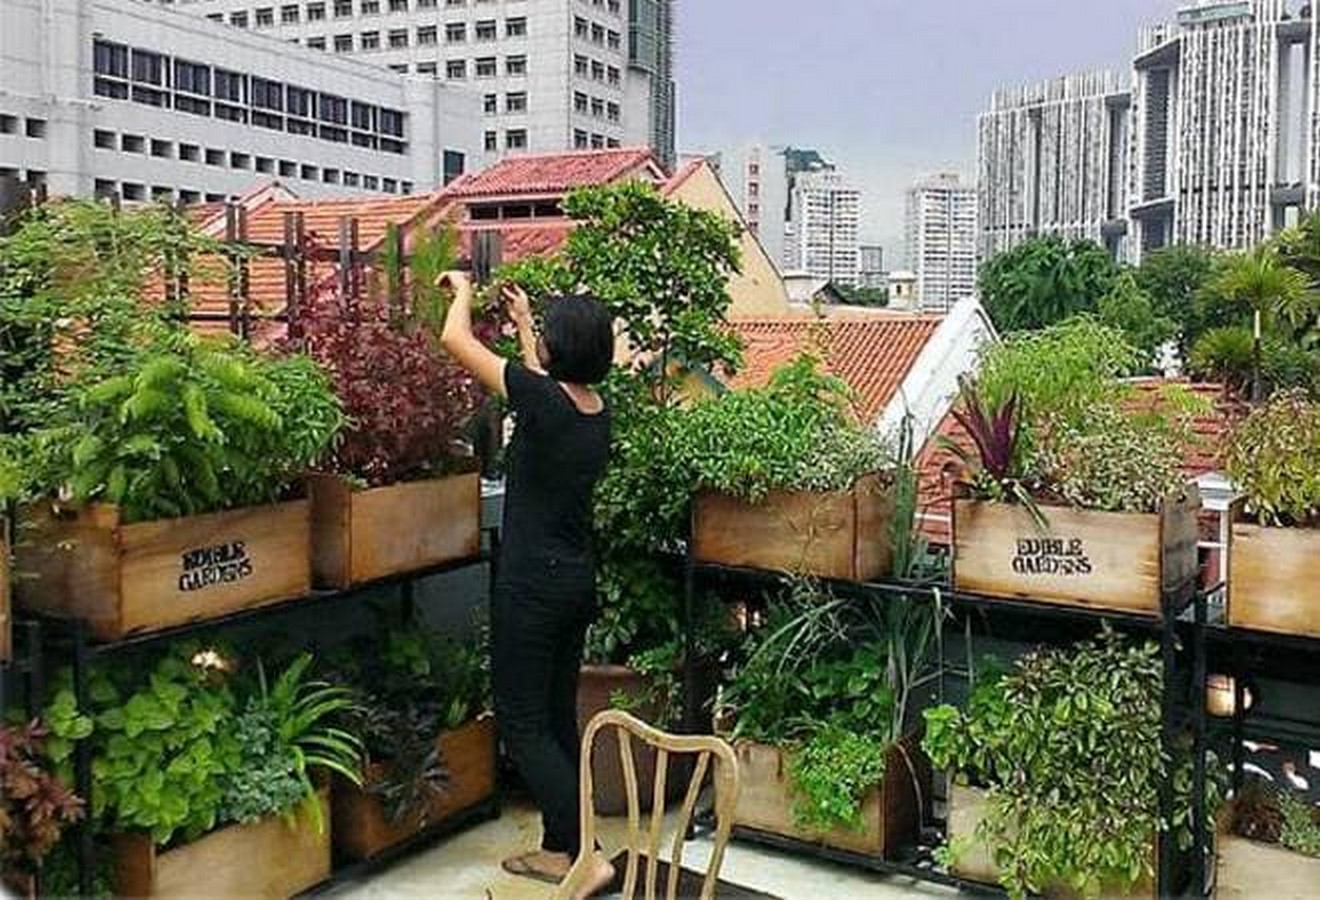 10 things to remember when designing rooftop gardens - Sheet3